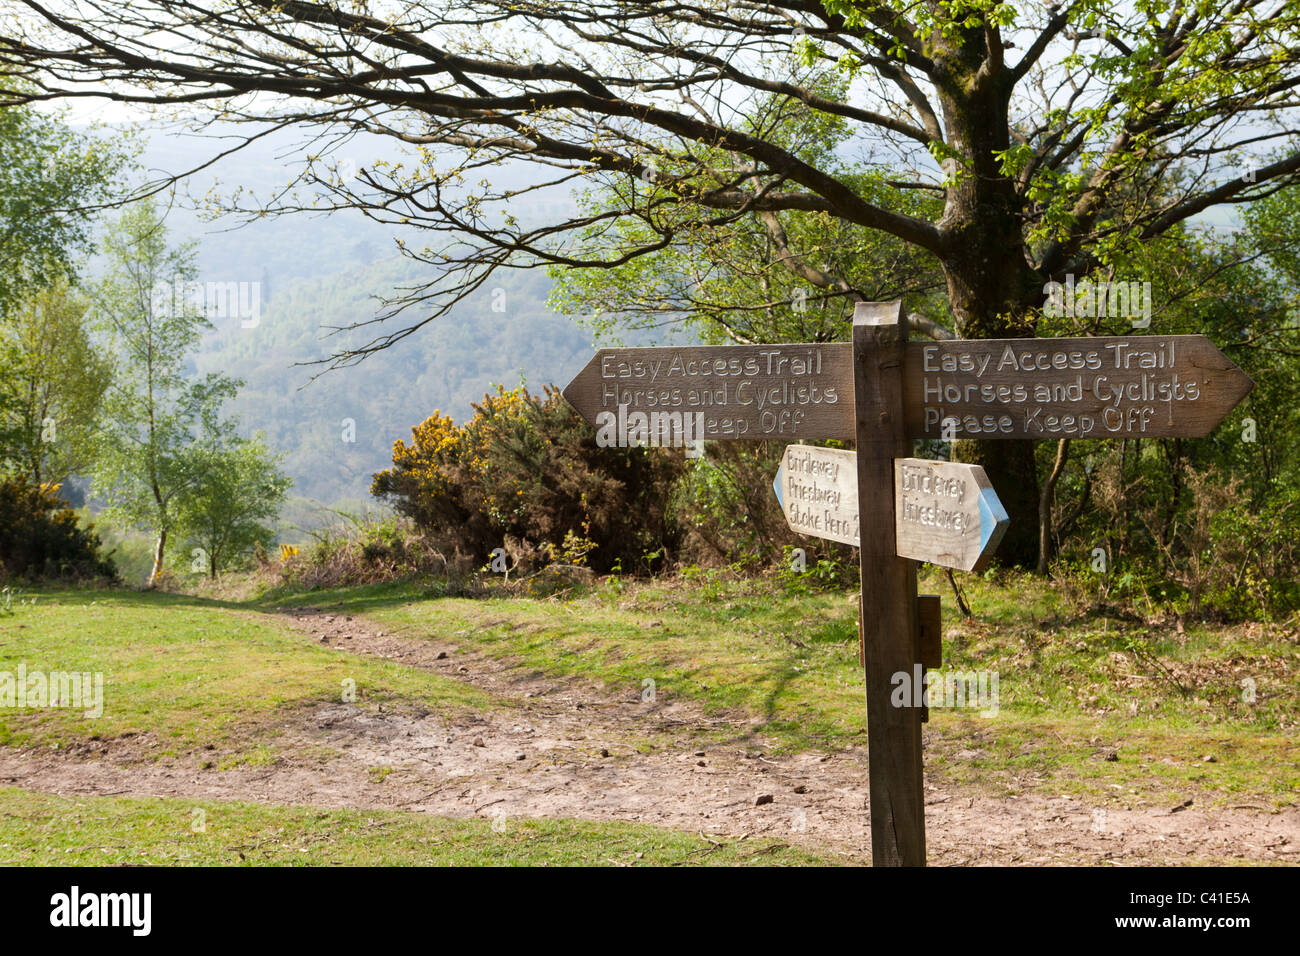 Sign on the Webbers Post Easy Access Trail on Exmoor, Somerset, England UK - Stock Image